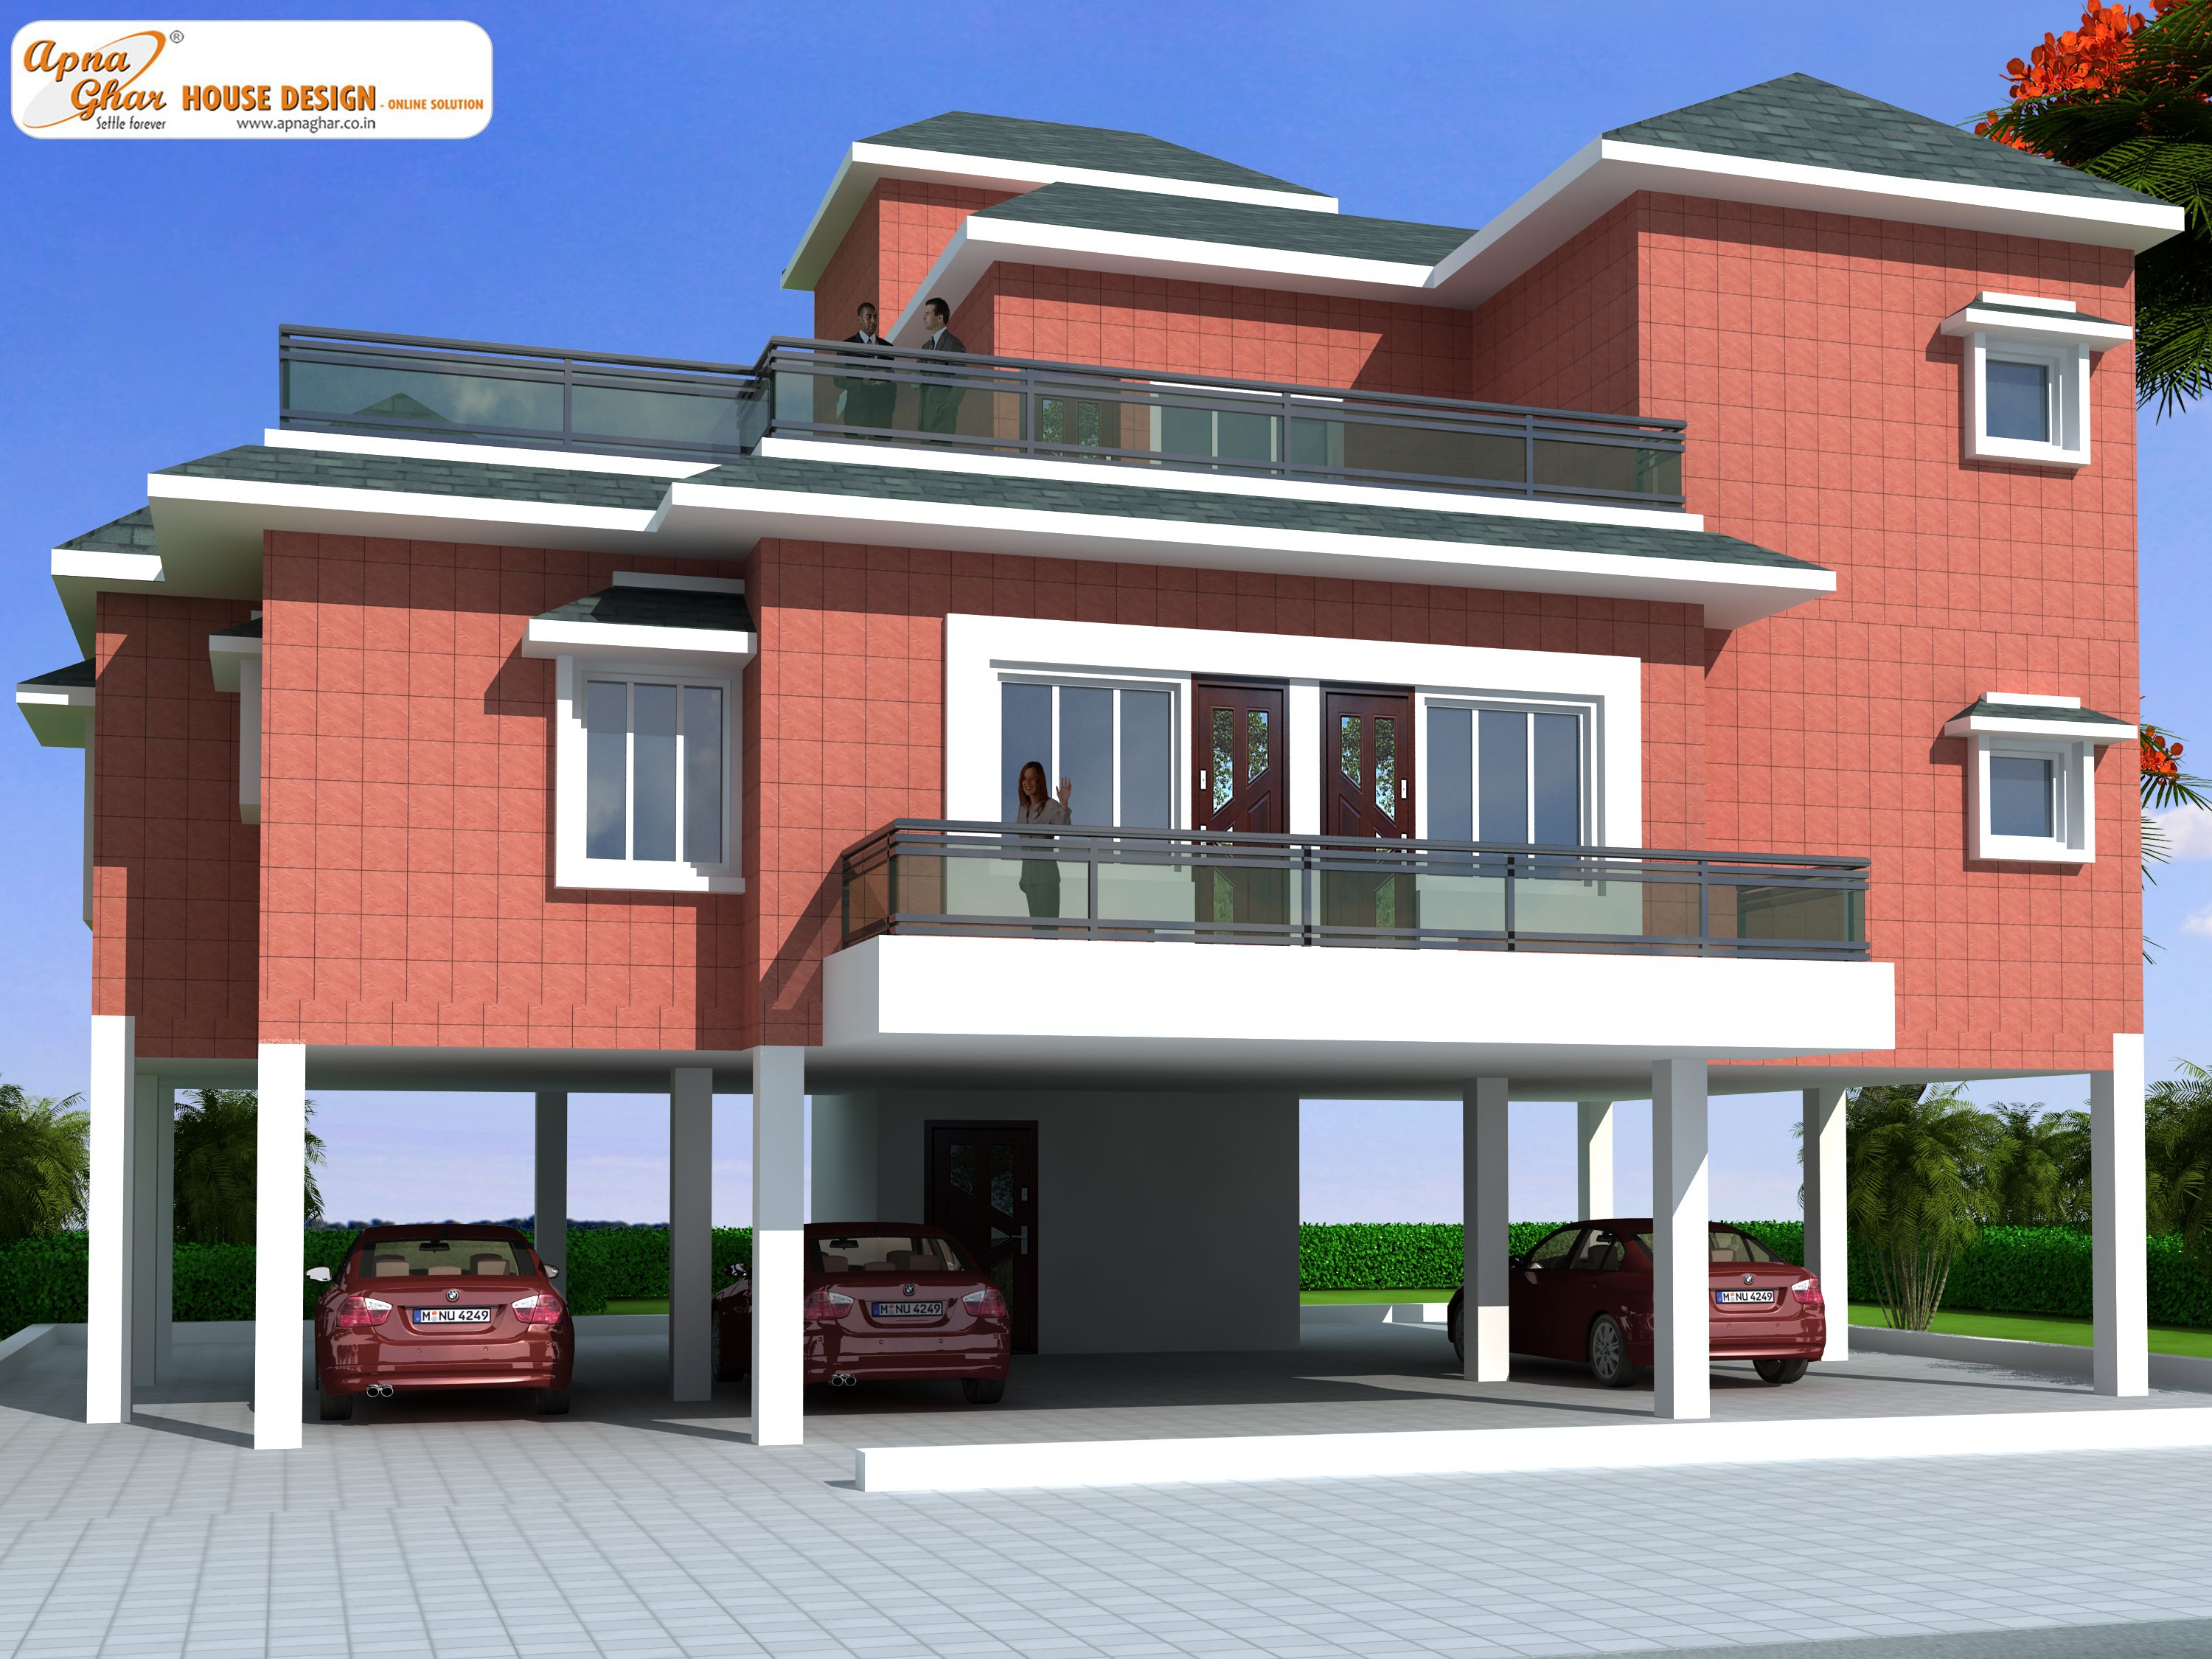 House design first floor - This Is A Beautiful Four Bedrooms Duplex House Design Stilt Floor Ample Space For Car Parking Is Given In Drives Way Lawns At Both Rear And Front Ends